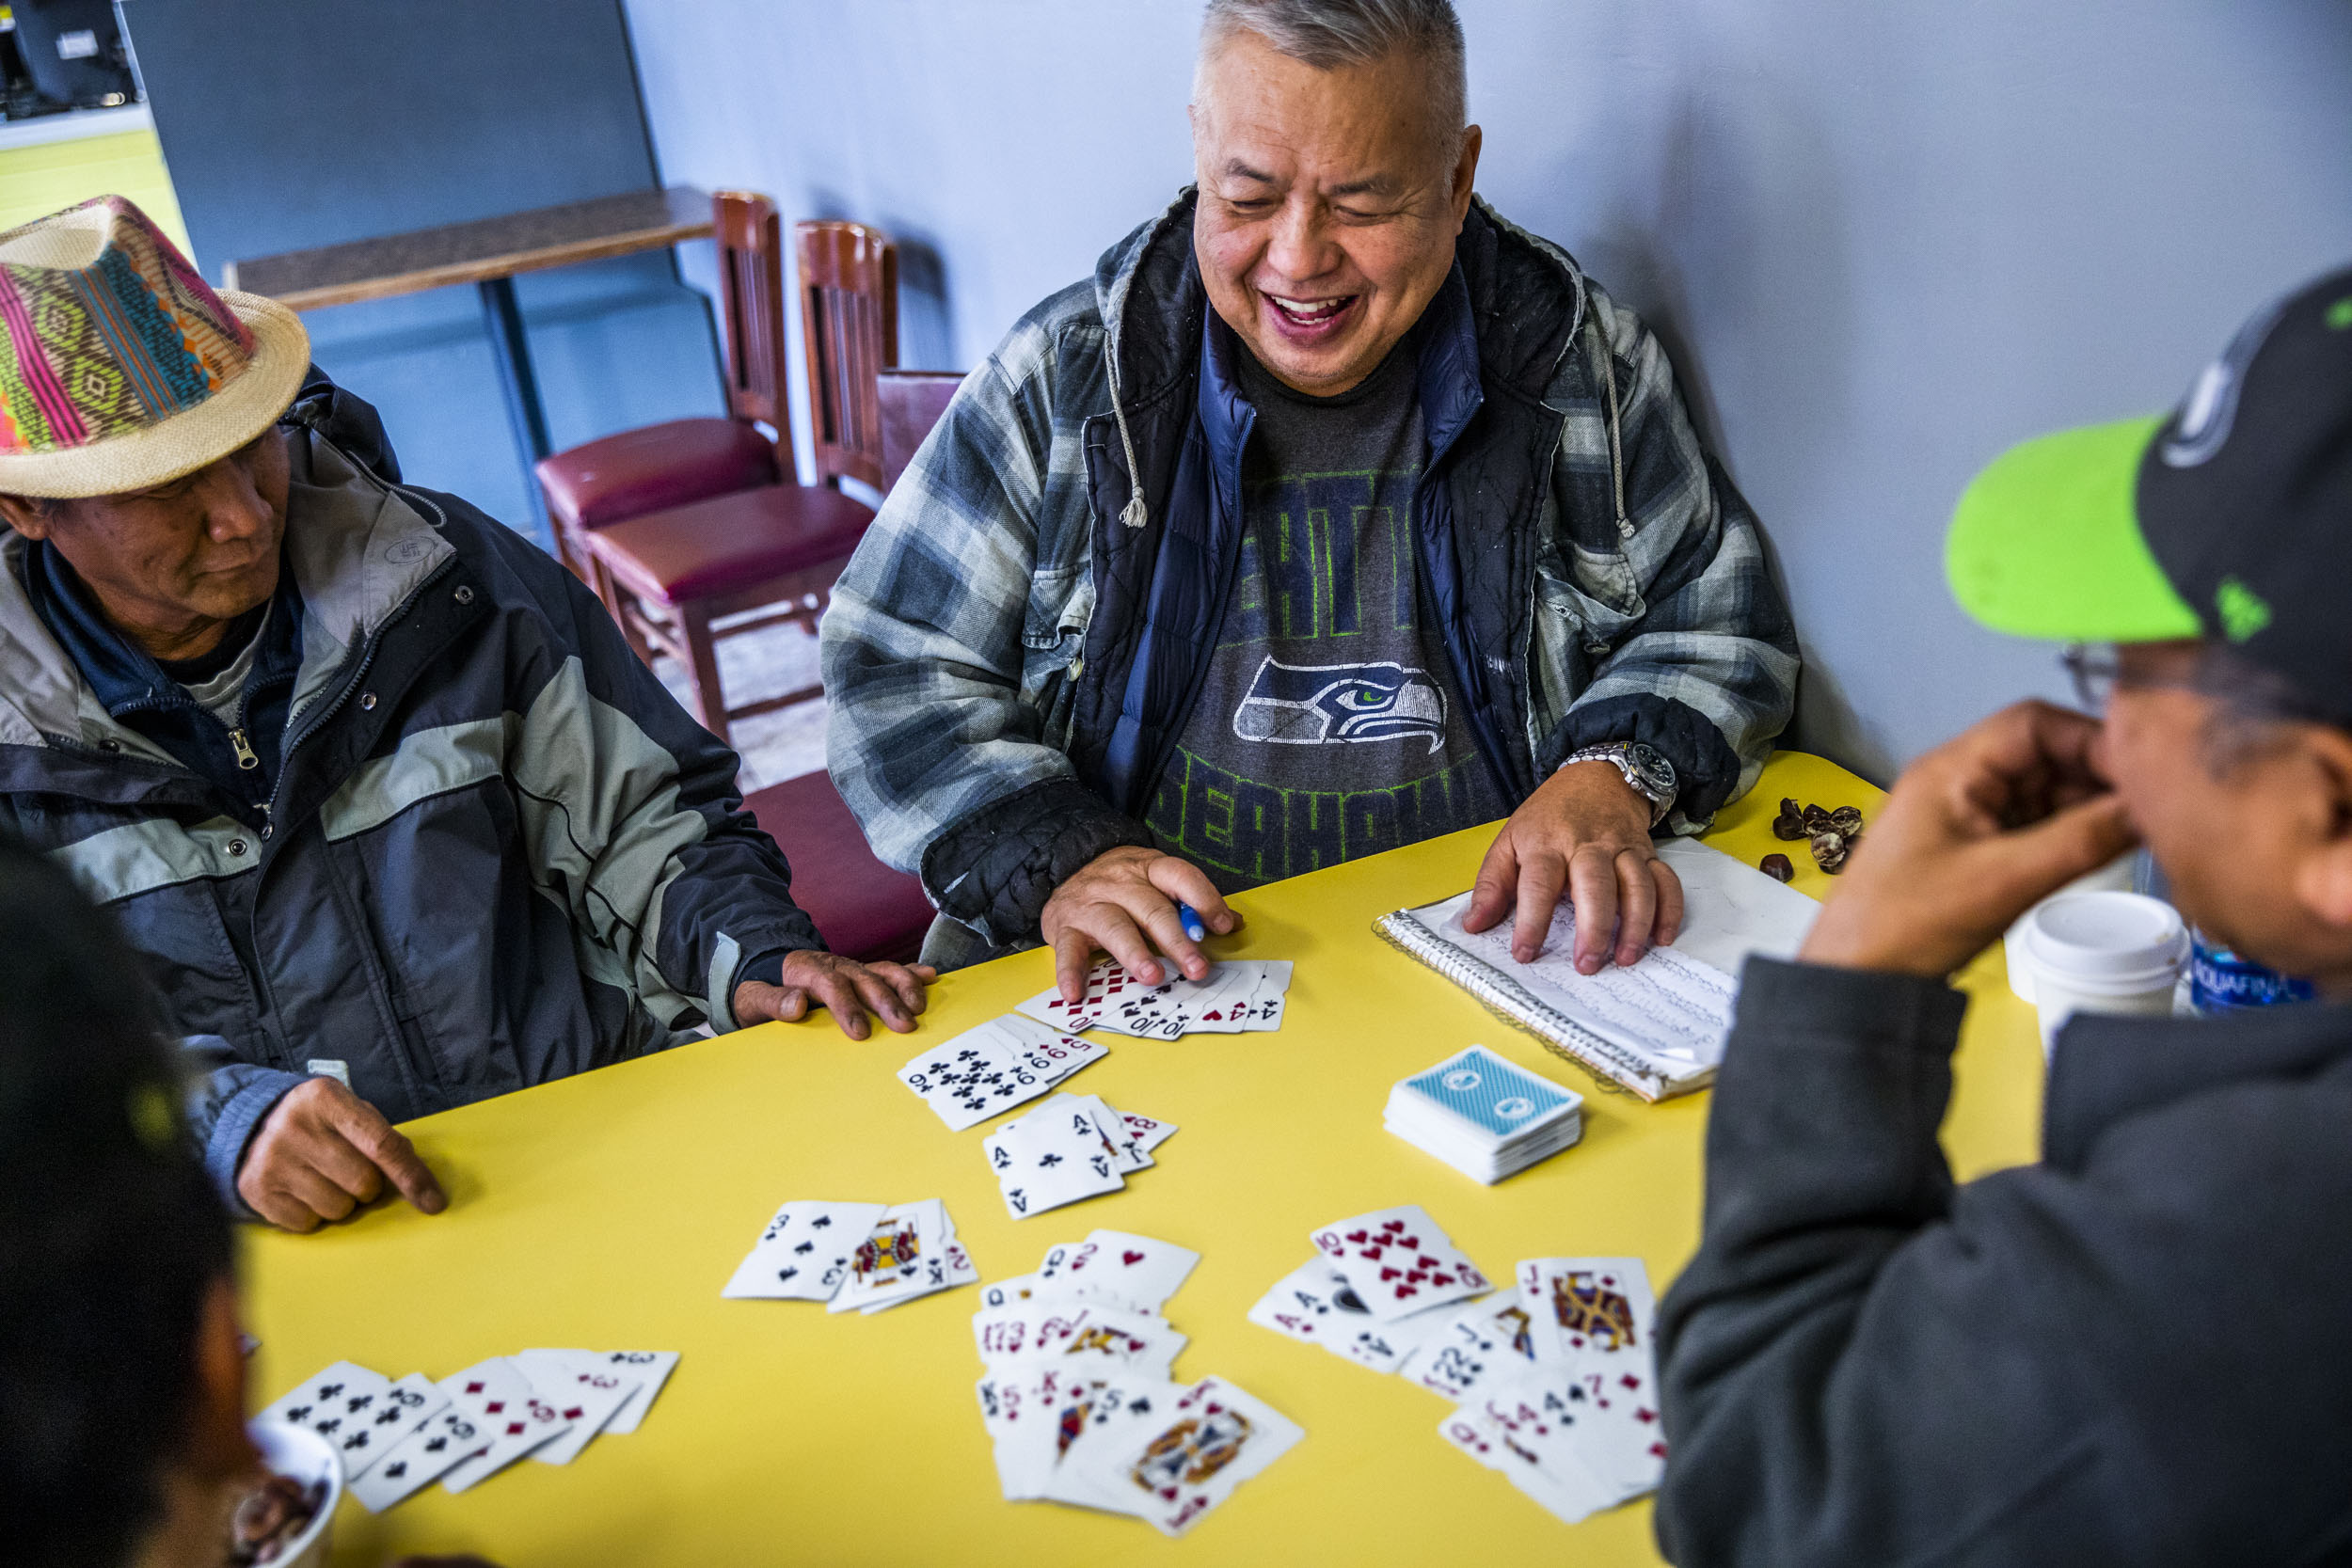 Ed Campos, 68, of Seattle plays a game of cards with other regulars at King Donuts in Rainier Beach on Wednesday, Nov. 14, 2018. Campos says he has been coming to King Donuts for the last 30 years.